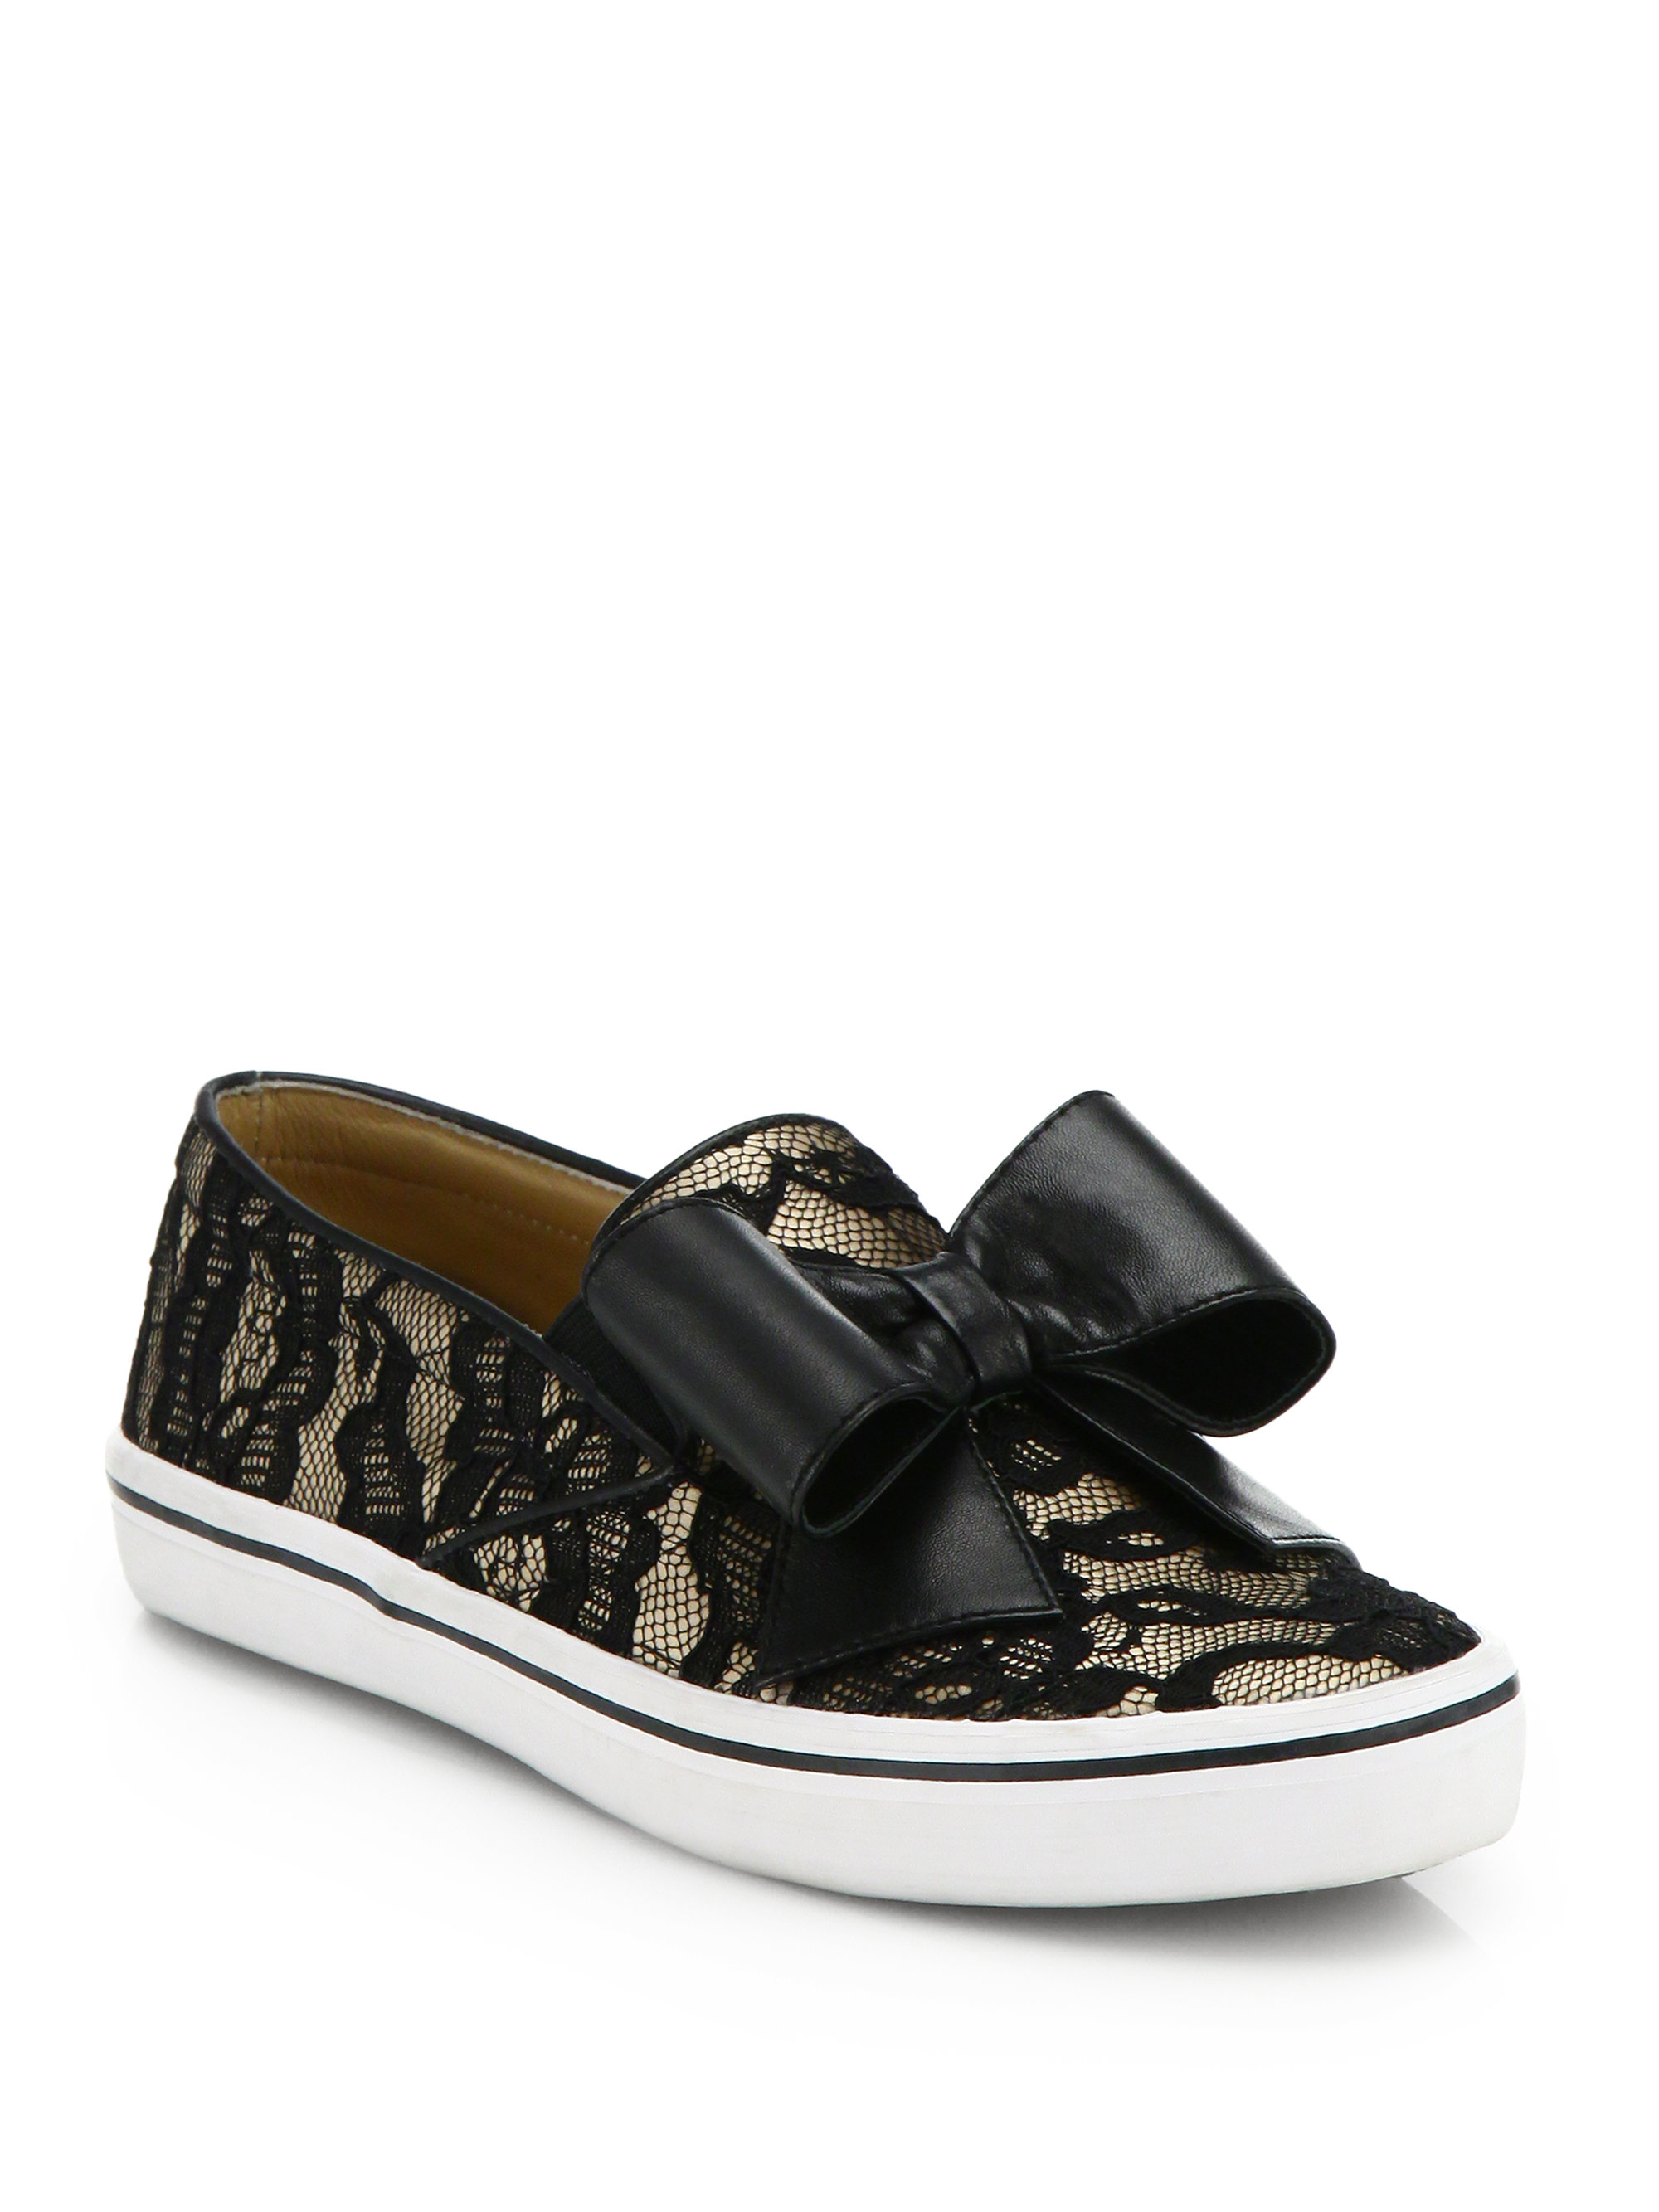 57a38c9c3fe0 Lyst - Kate Spade Delise Leopard Print Haircalf Sneakers